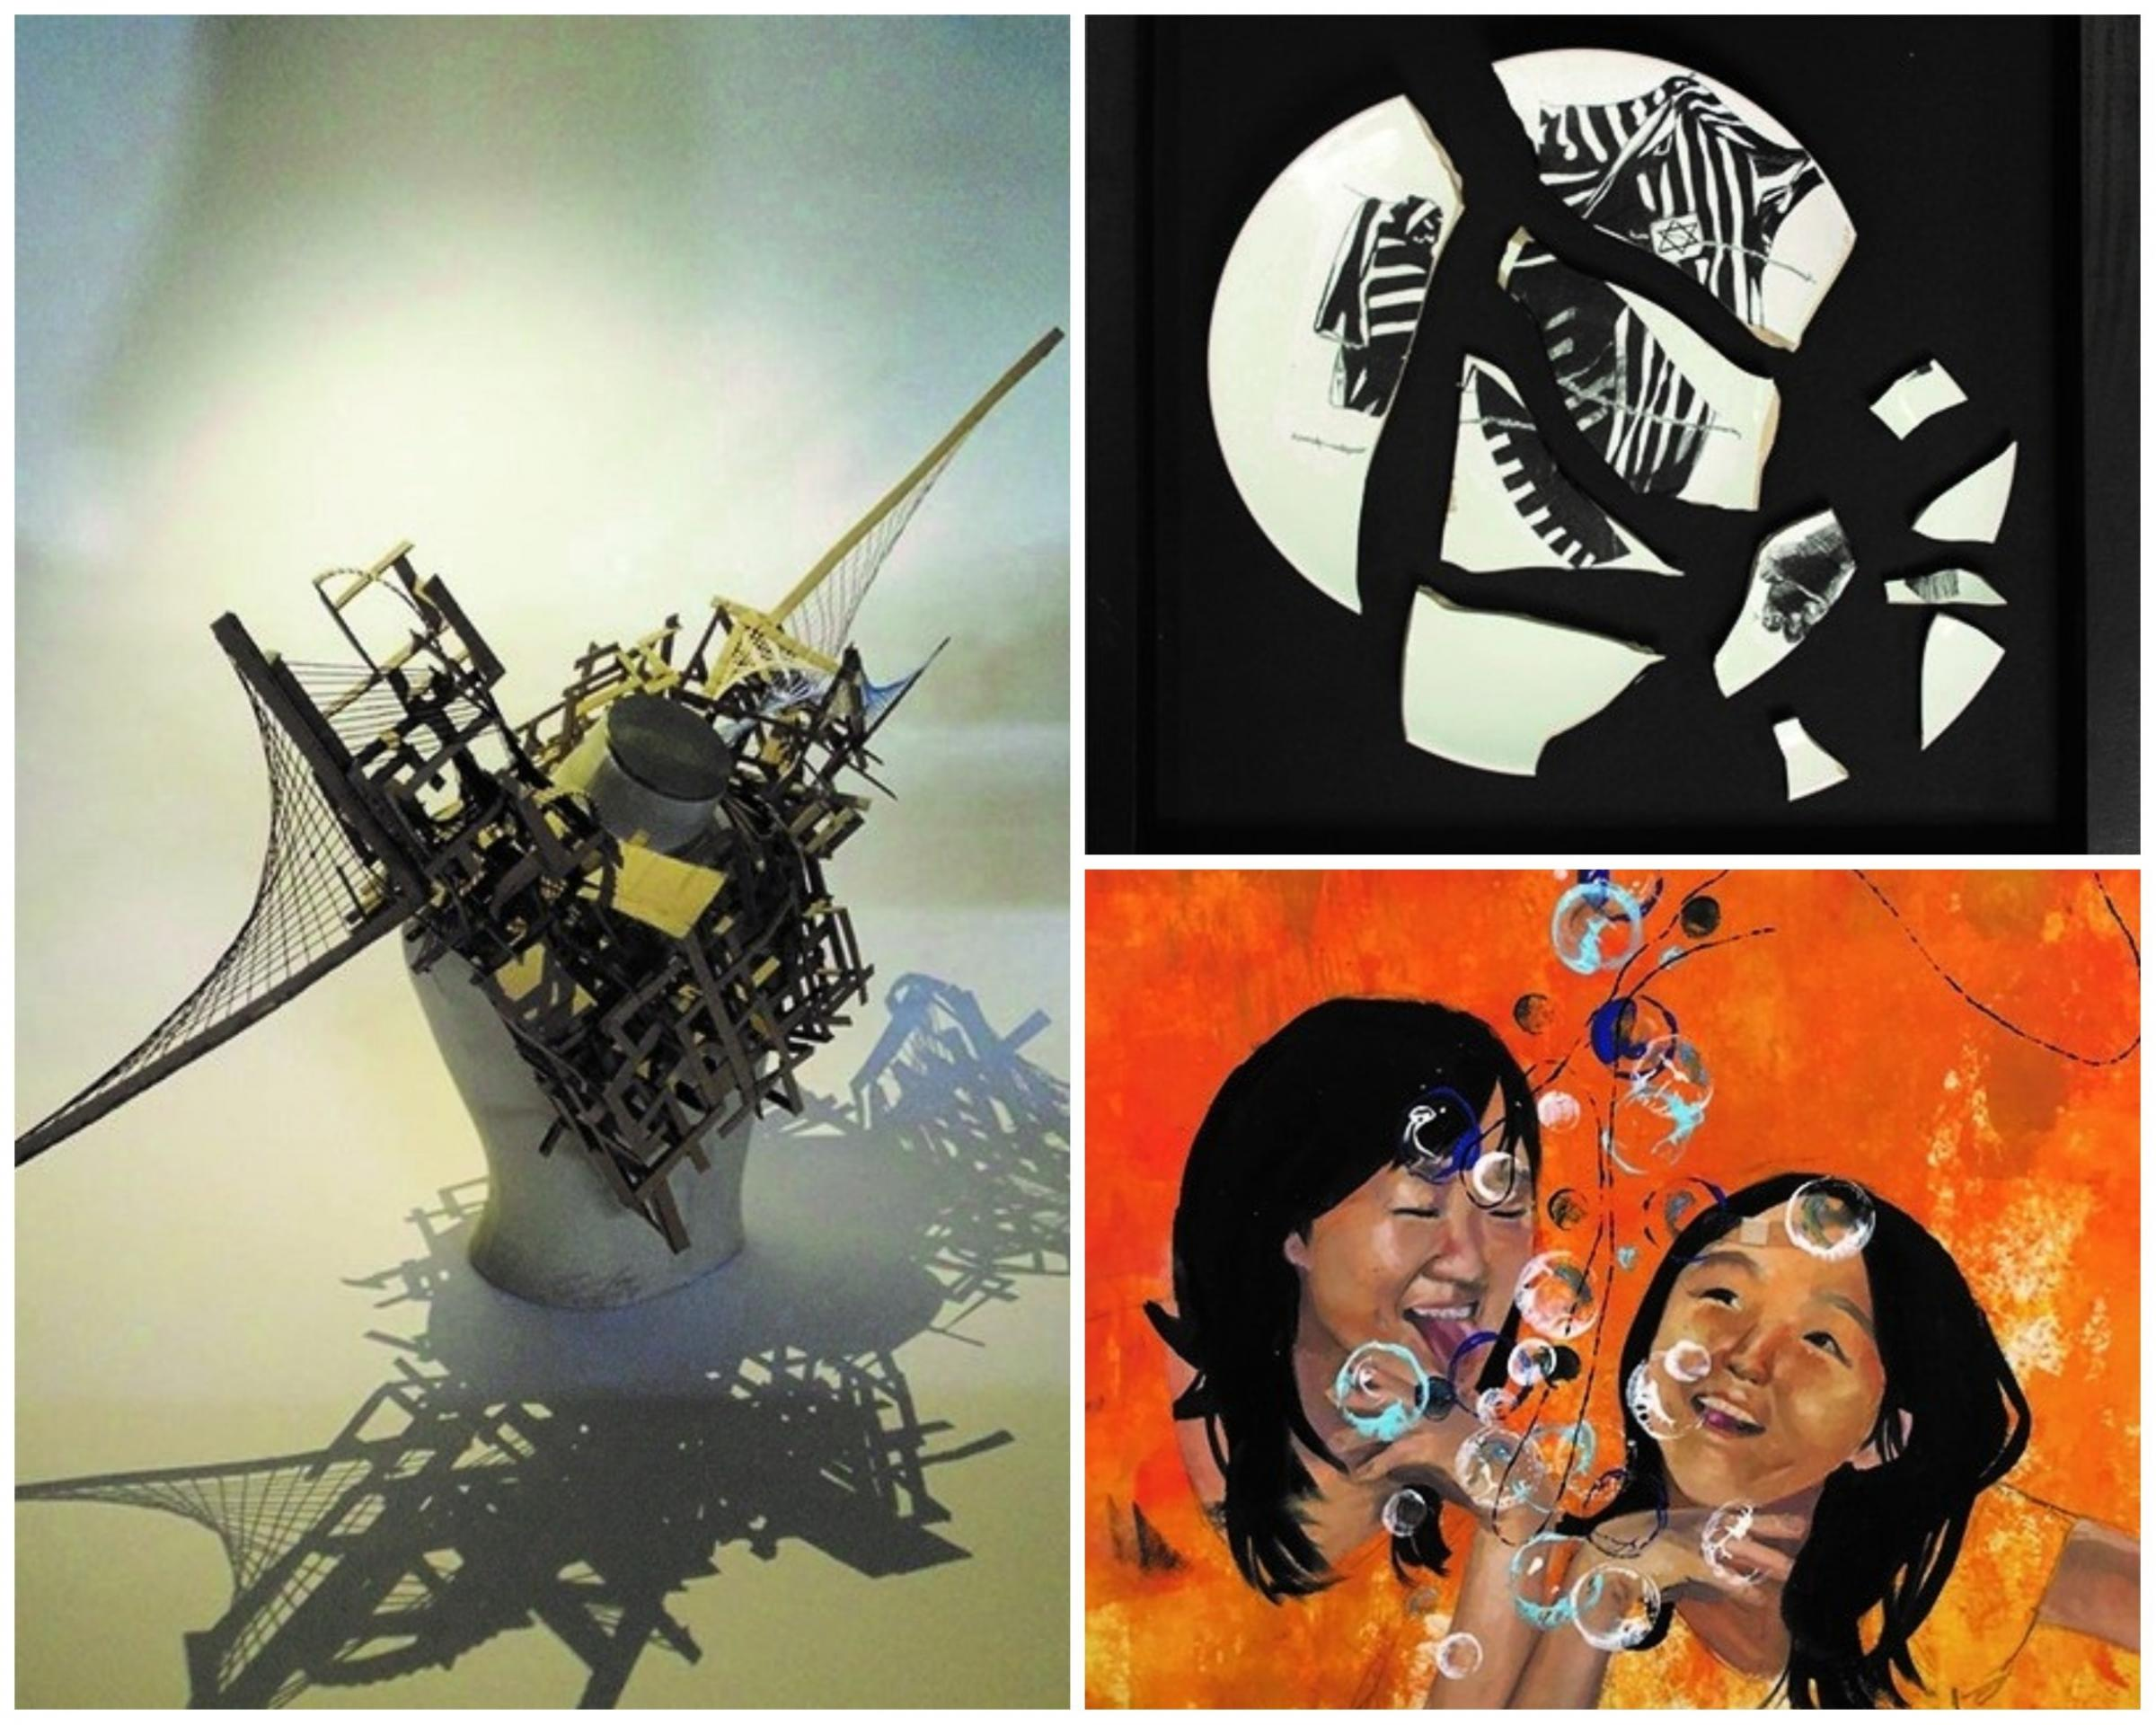 Work by George Birch (left), Freja Khela (top right) and Yena Choi (bottom right)